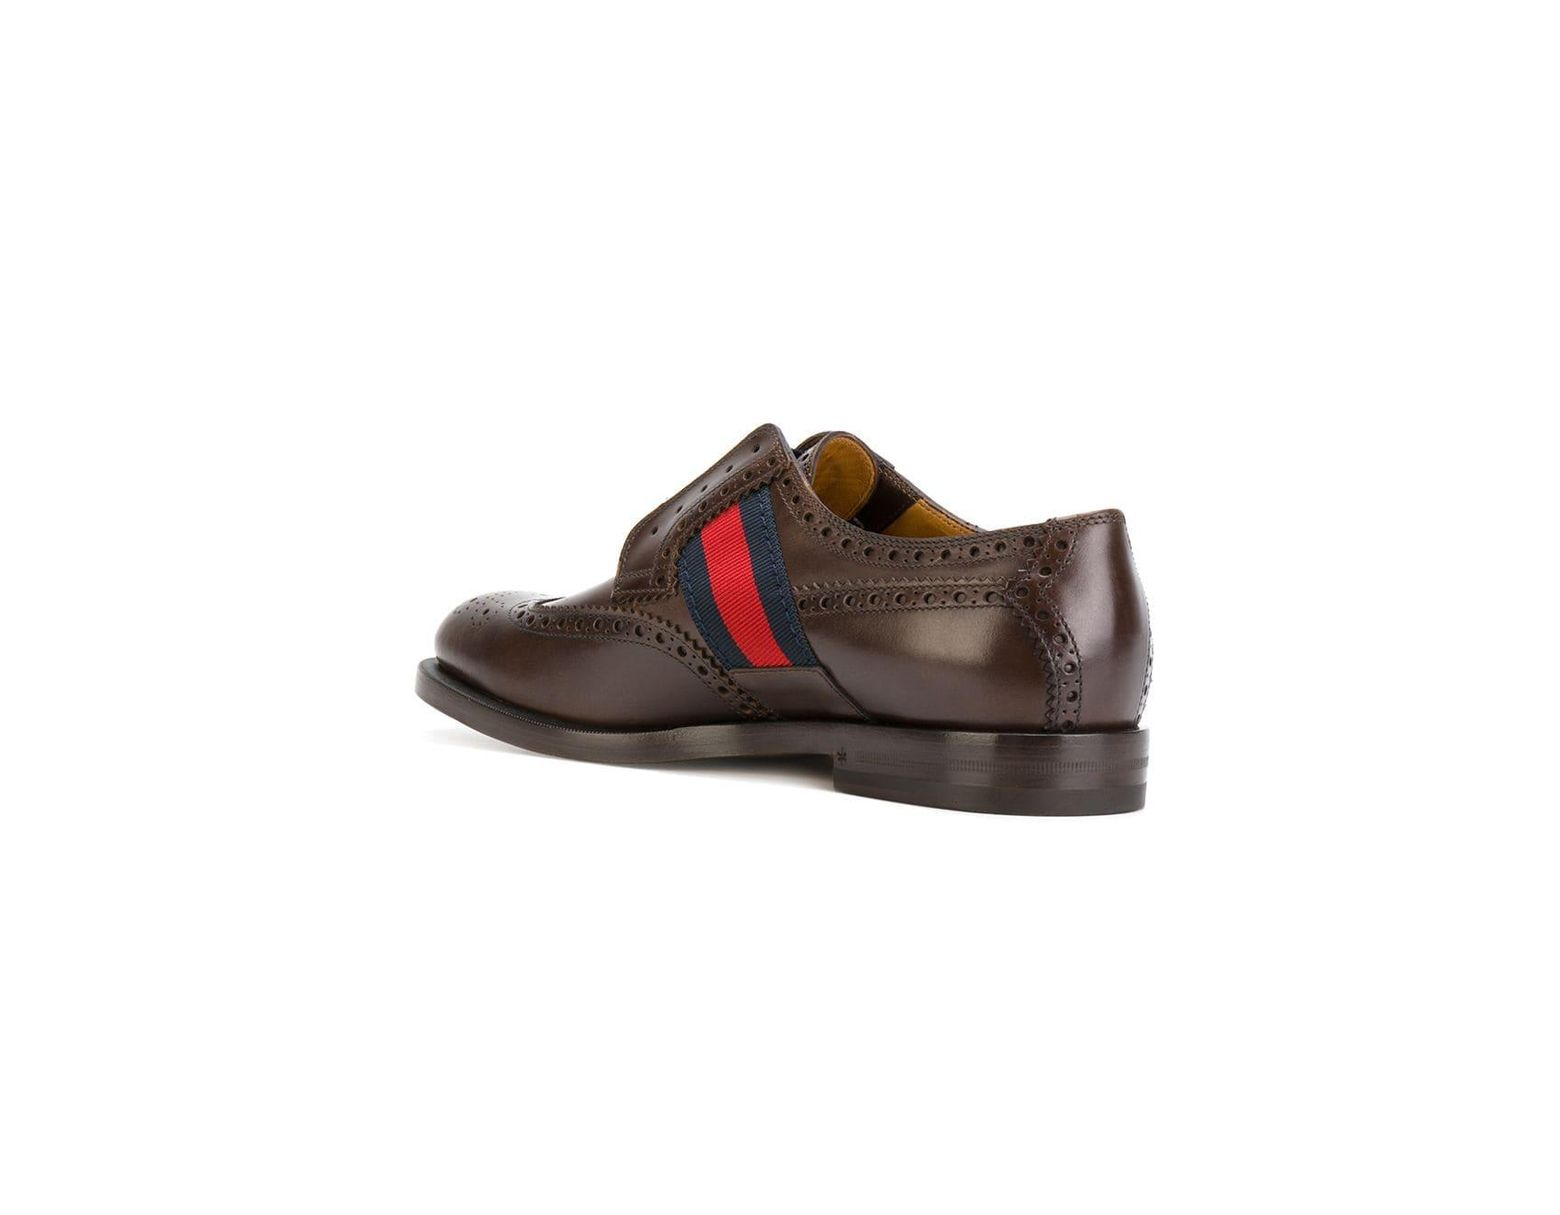 4860ba81f Gucci Bee GG Web Trim Brogues in Brown for Men - Lyst